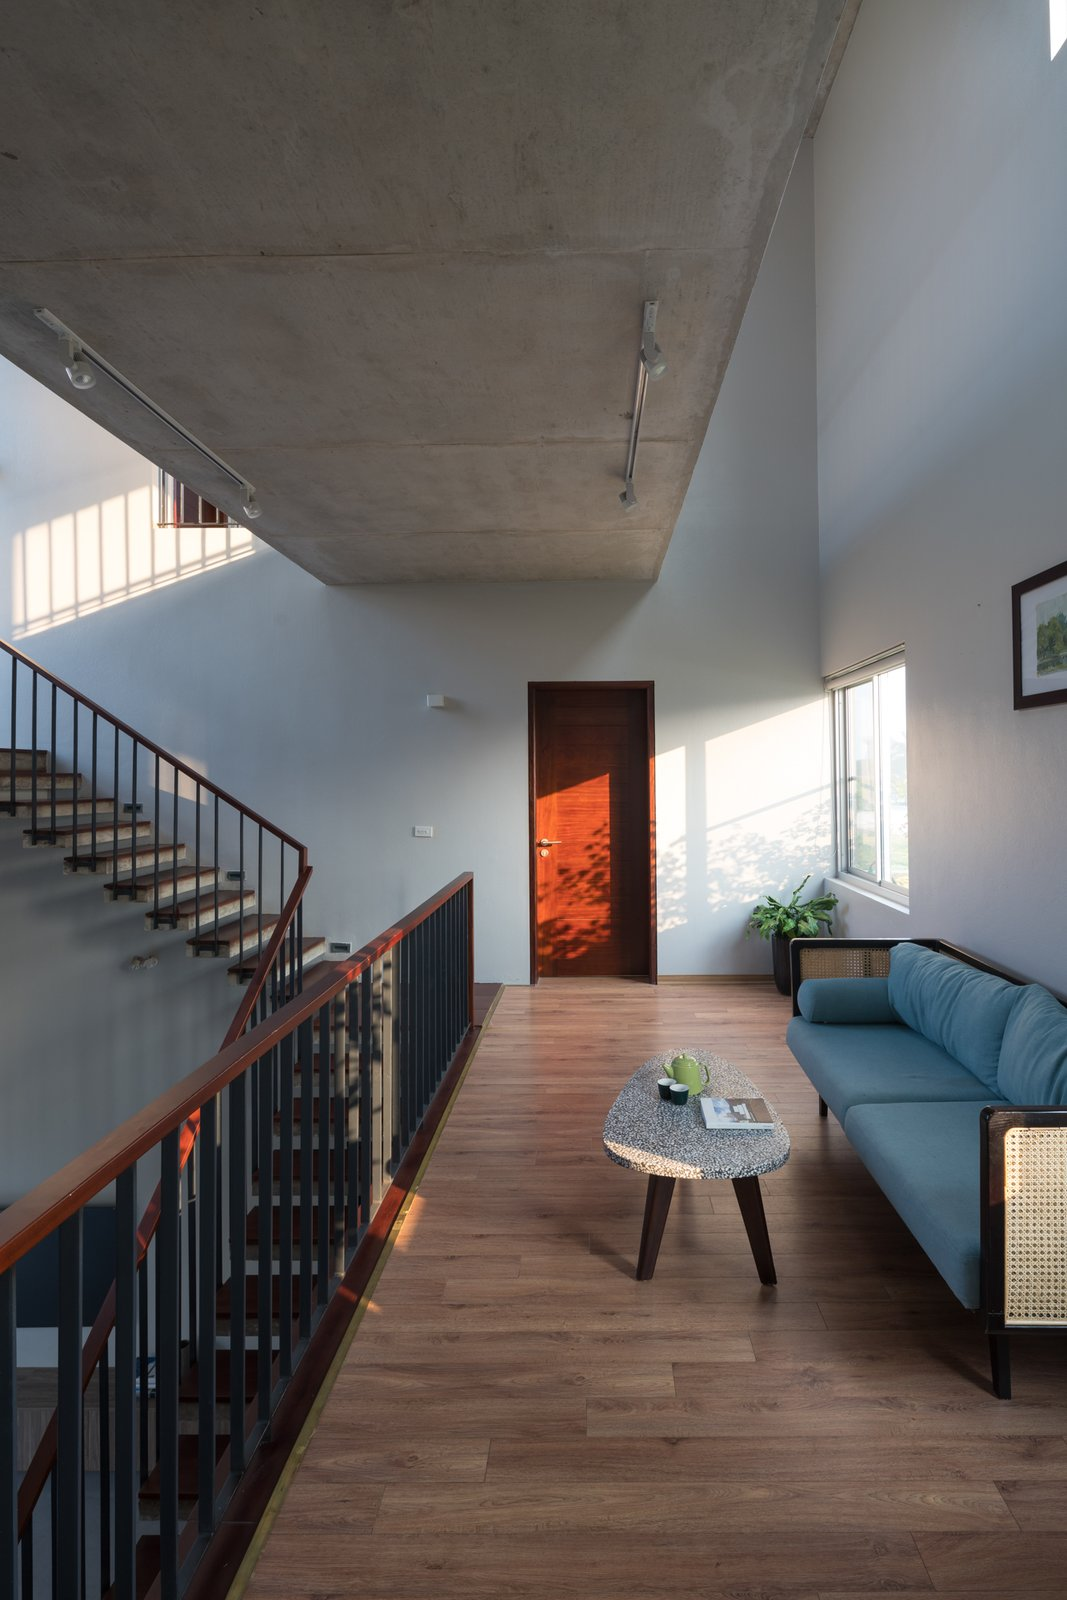 Living Room, Ceiling Lighting, Medium Hardwood Floor, Sofa, and Coffee Tables Inside, the corridors both create a space that connects people and nature, as well as the place where the daily activities of the family take place.  Ninh Binh House